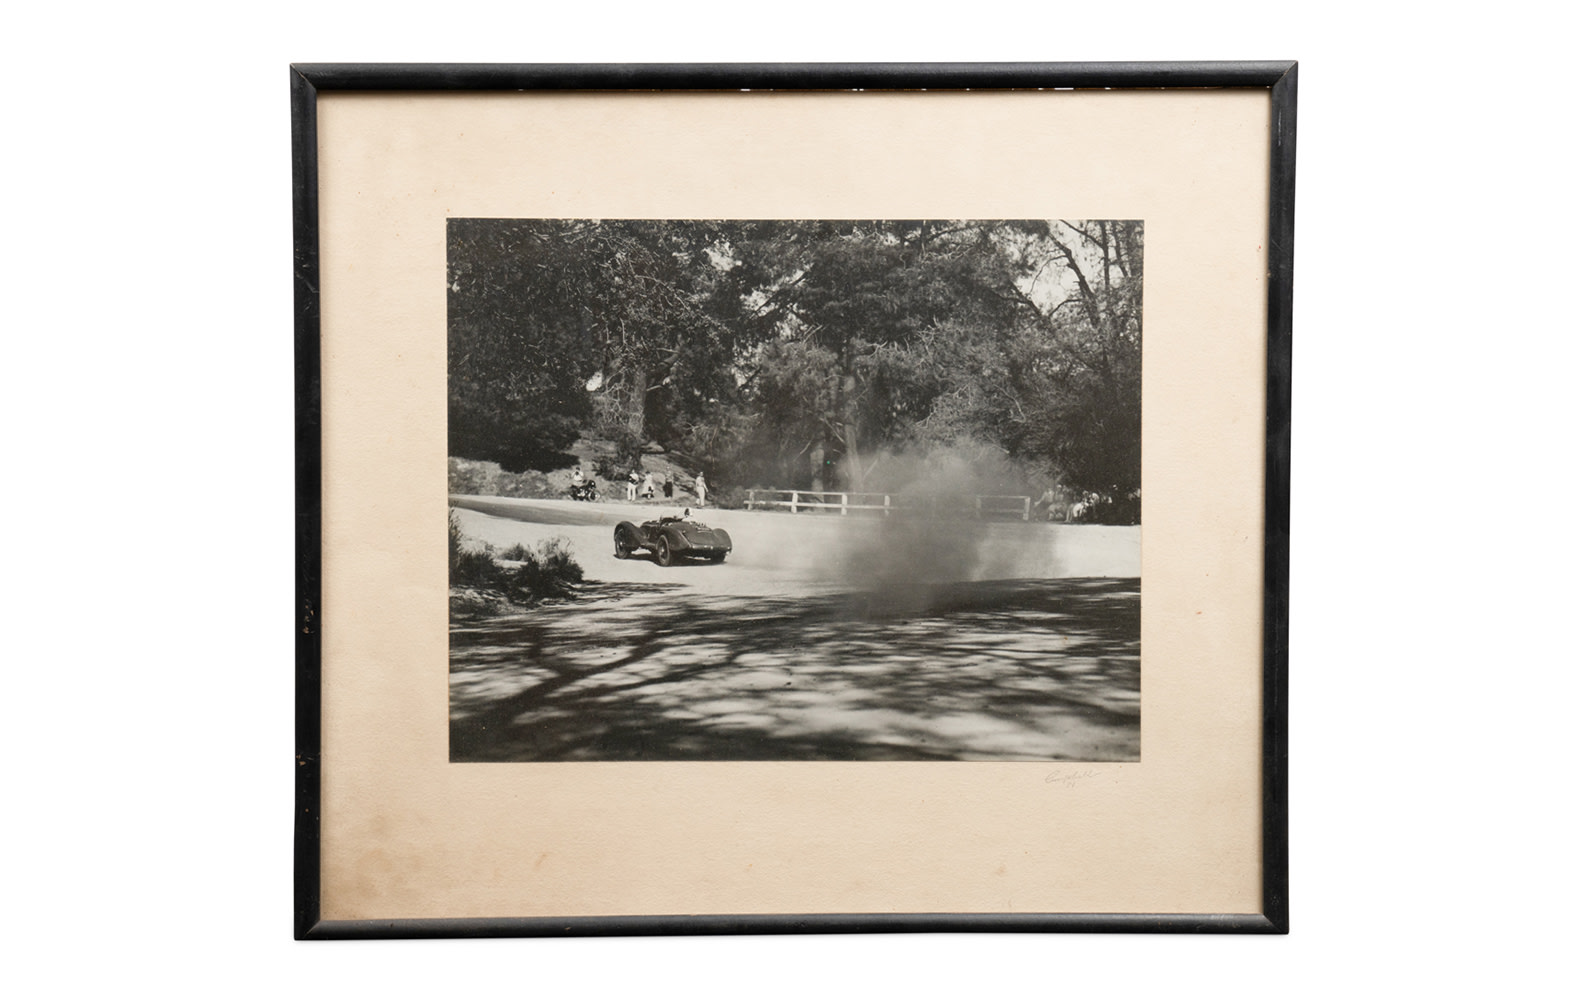 Photograph of Phil Hill Driving His Alfa Romeo 8C 2900B Mille Miglia at Pebble Beach, Framed